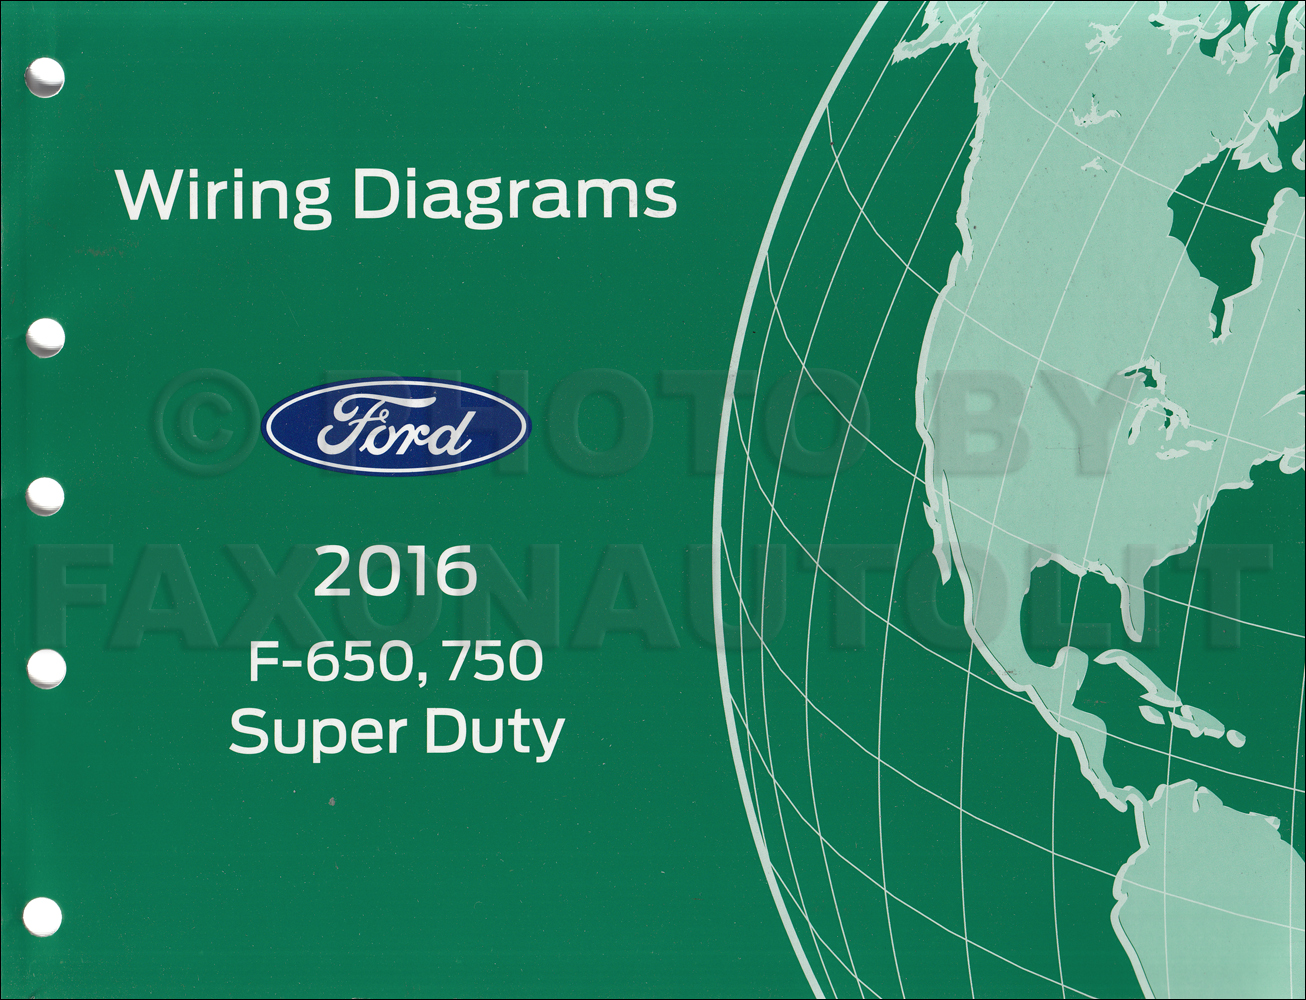 Ford F 650 Wiring Diagram Simple 2011 Super Duty 2016 And 750 Truck Manual